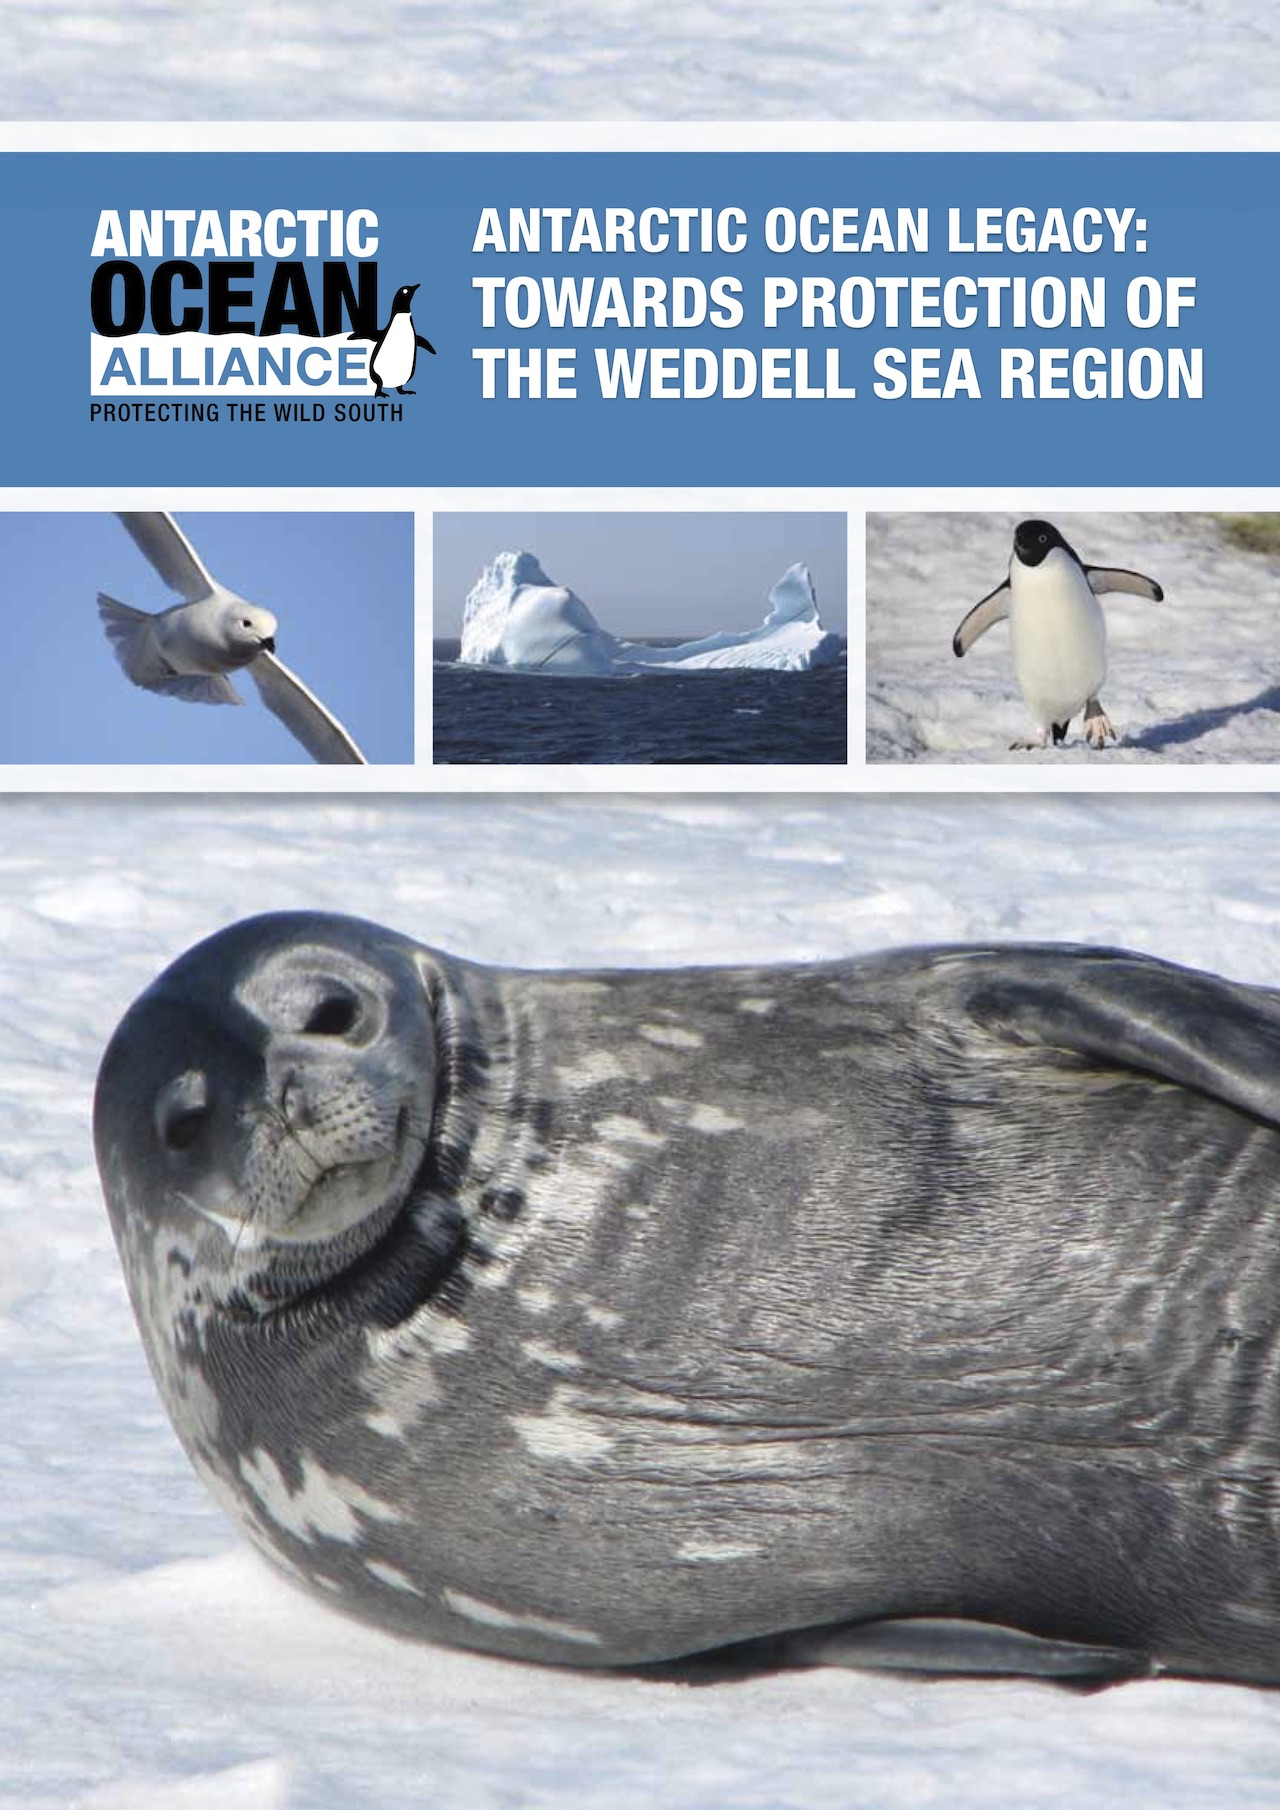 "Titelblatt des Berichtes: ""Vermächtnis des Südlichen Ozeans: Eine Vision für den Schutz des Weddell-Meeres"" (Antarctic Ocean Legacy: Towards Protection of the Weddell Sea Region)"